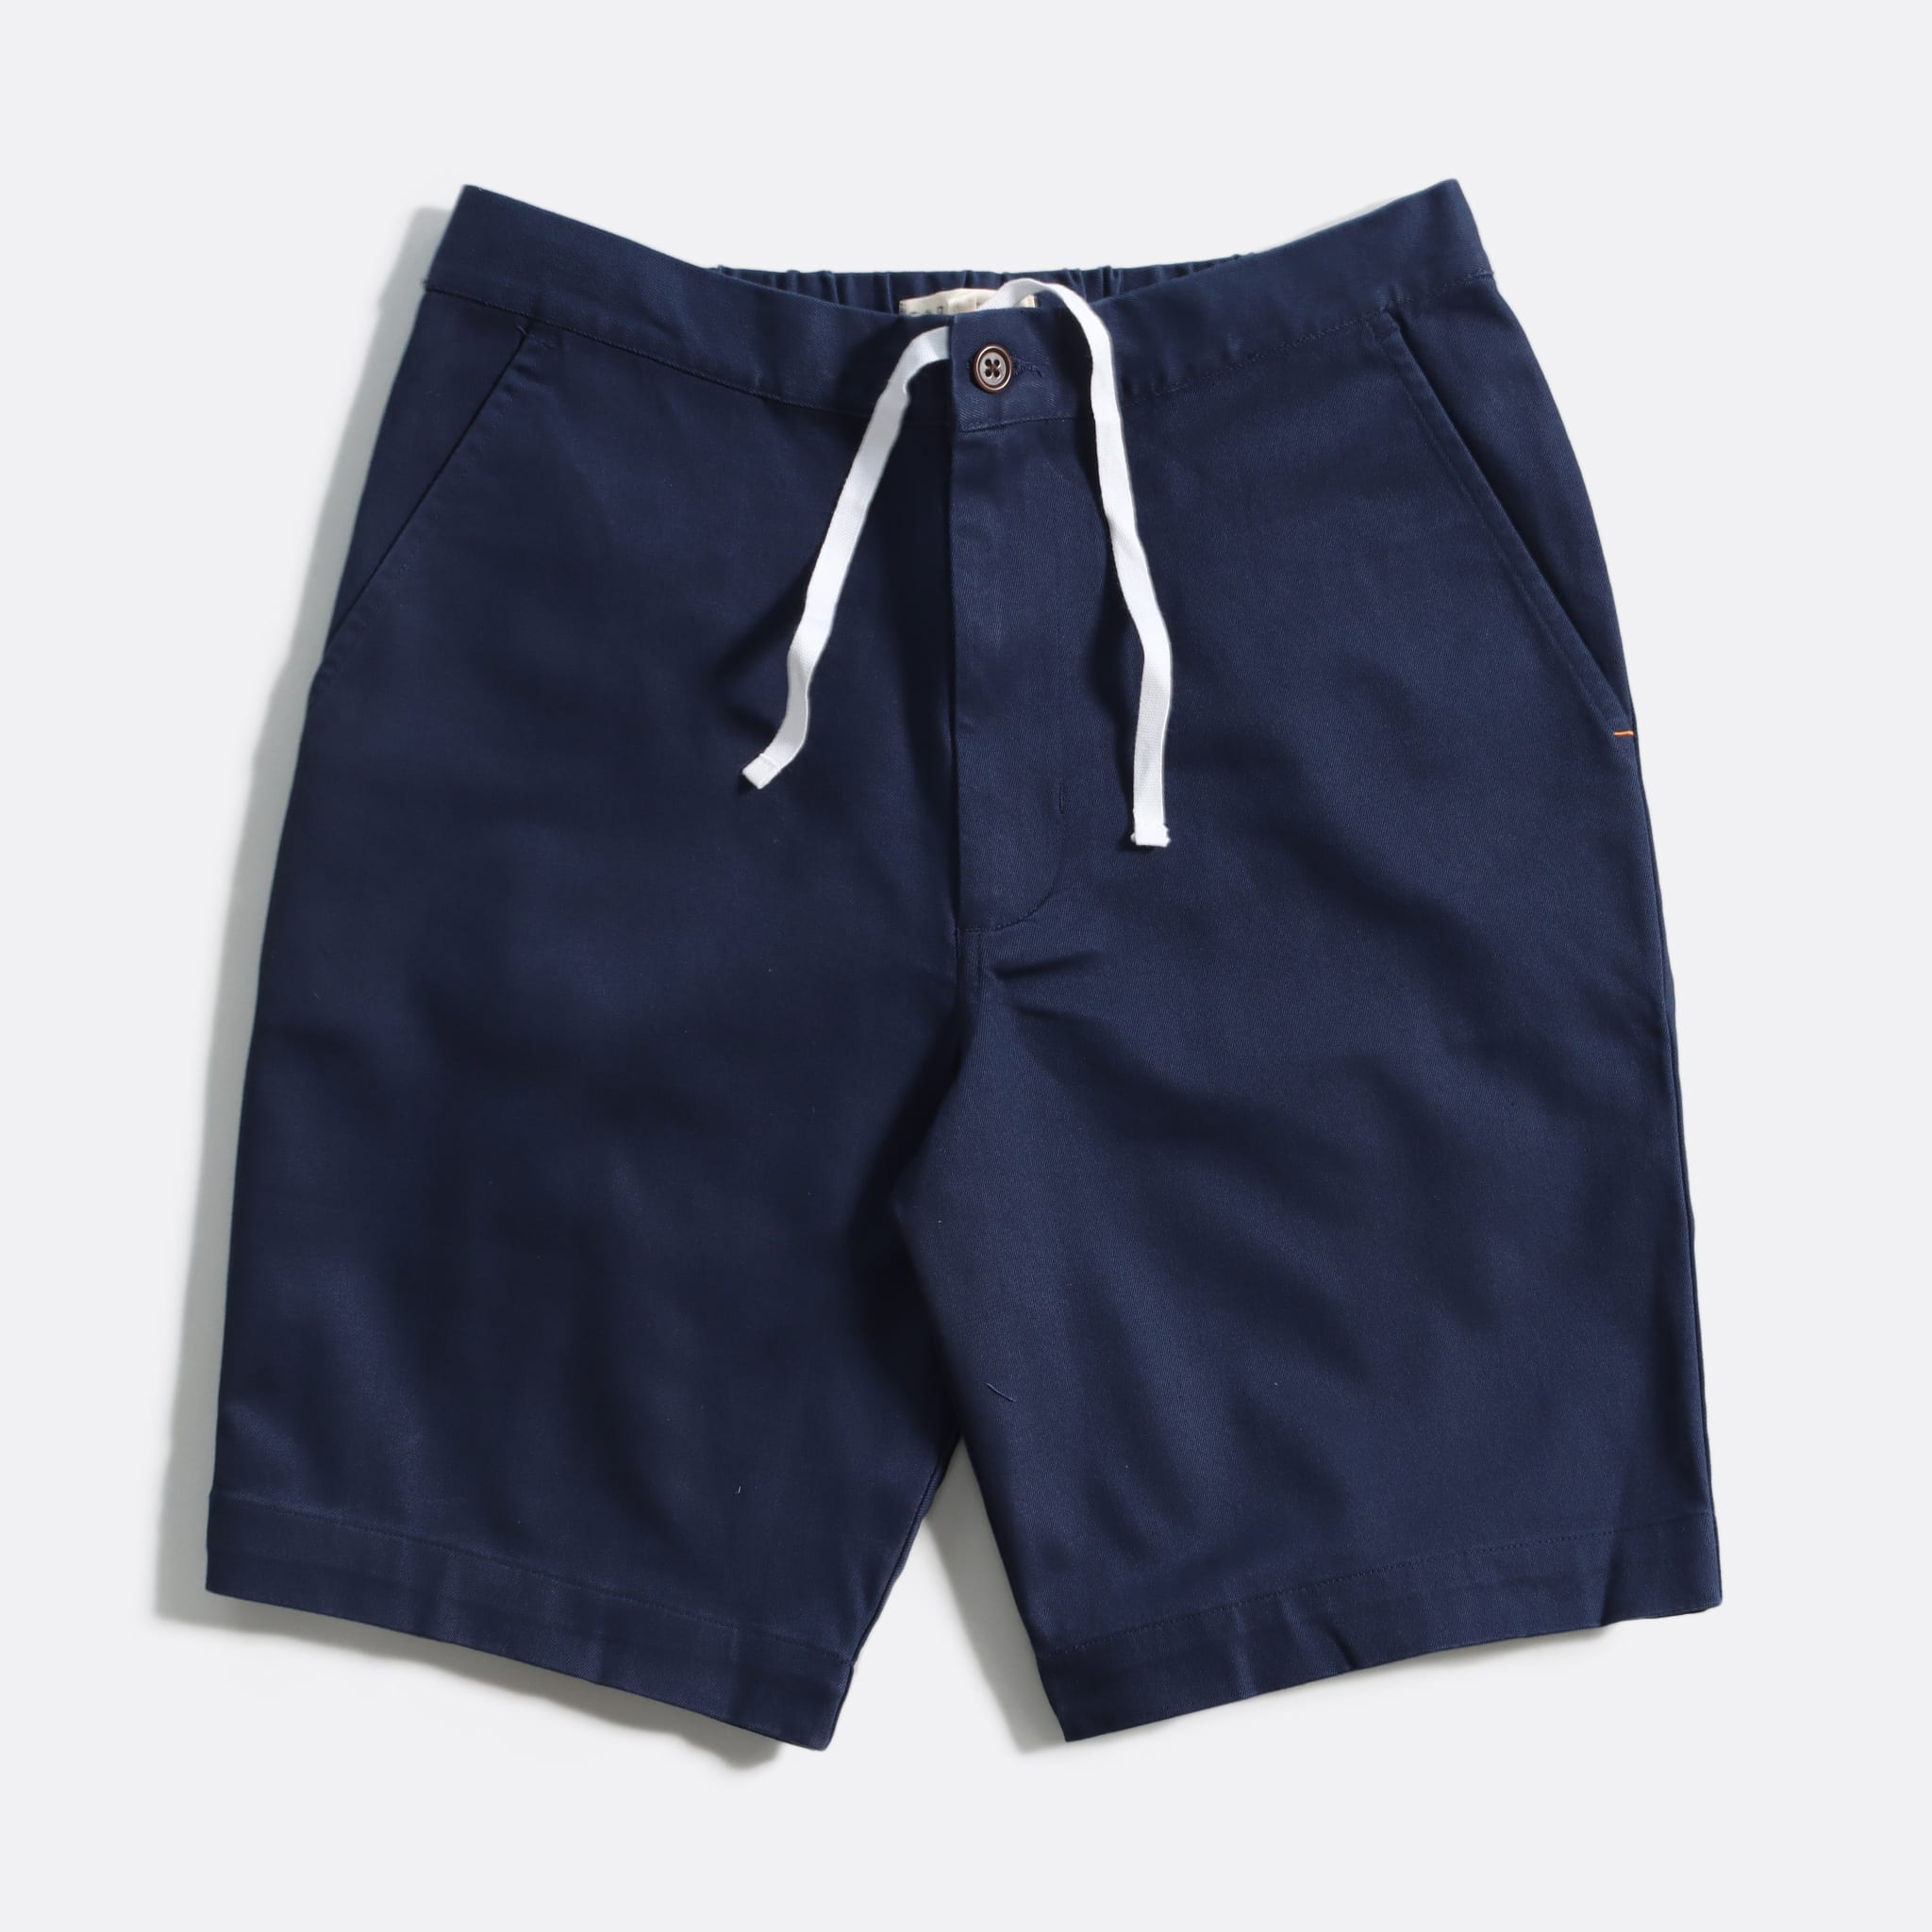 Far Afield Drawstring Shorts a Ensign Blue Organic Cotton Twill FabricCasual Basics